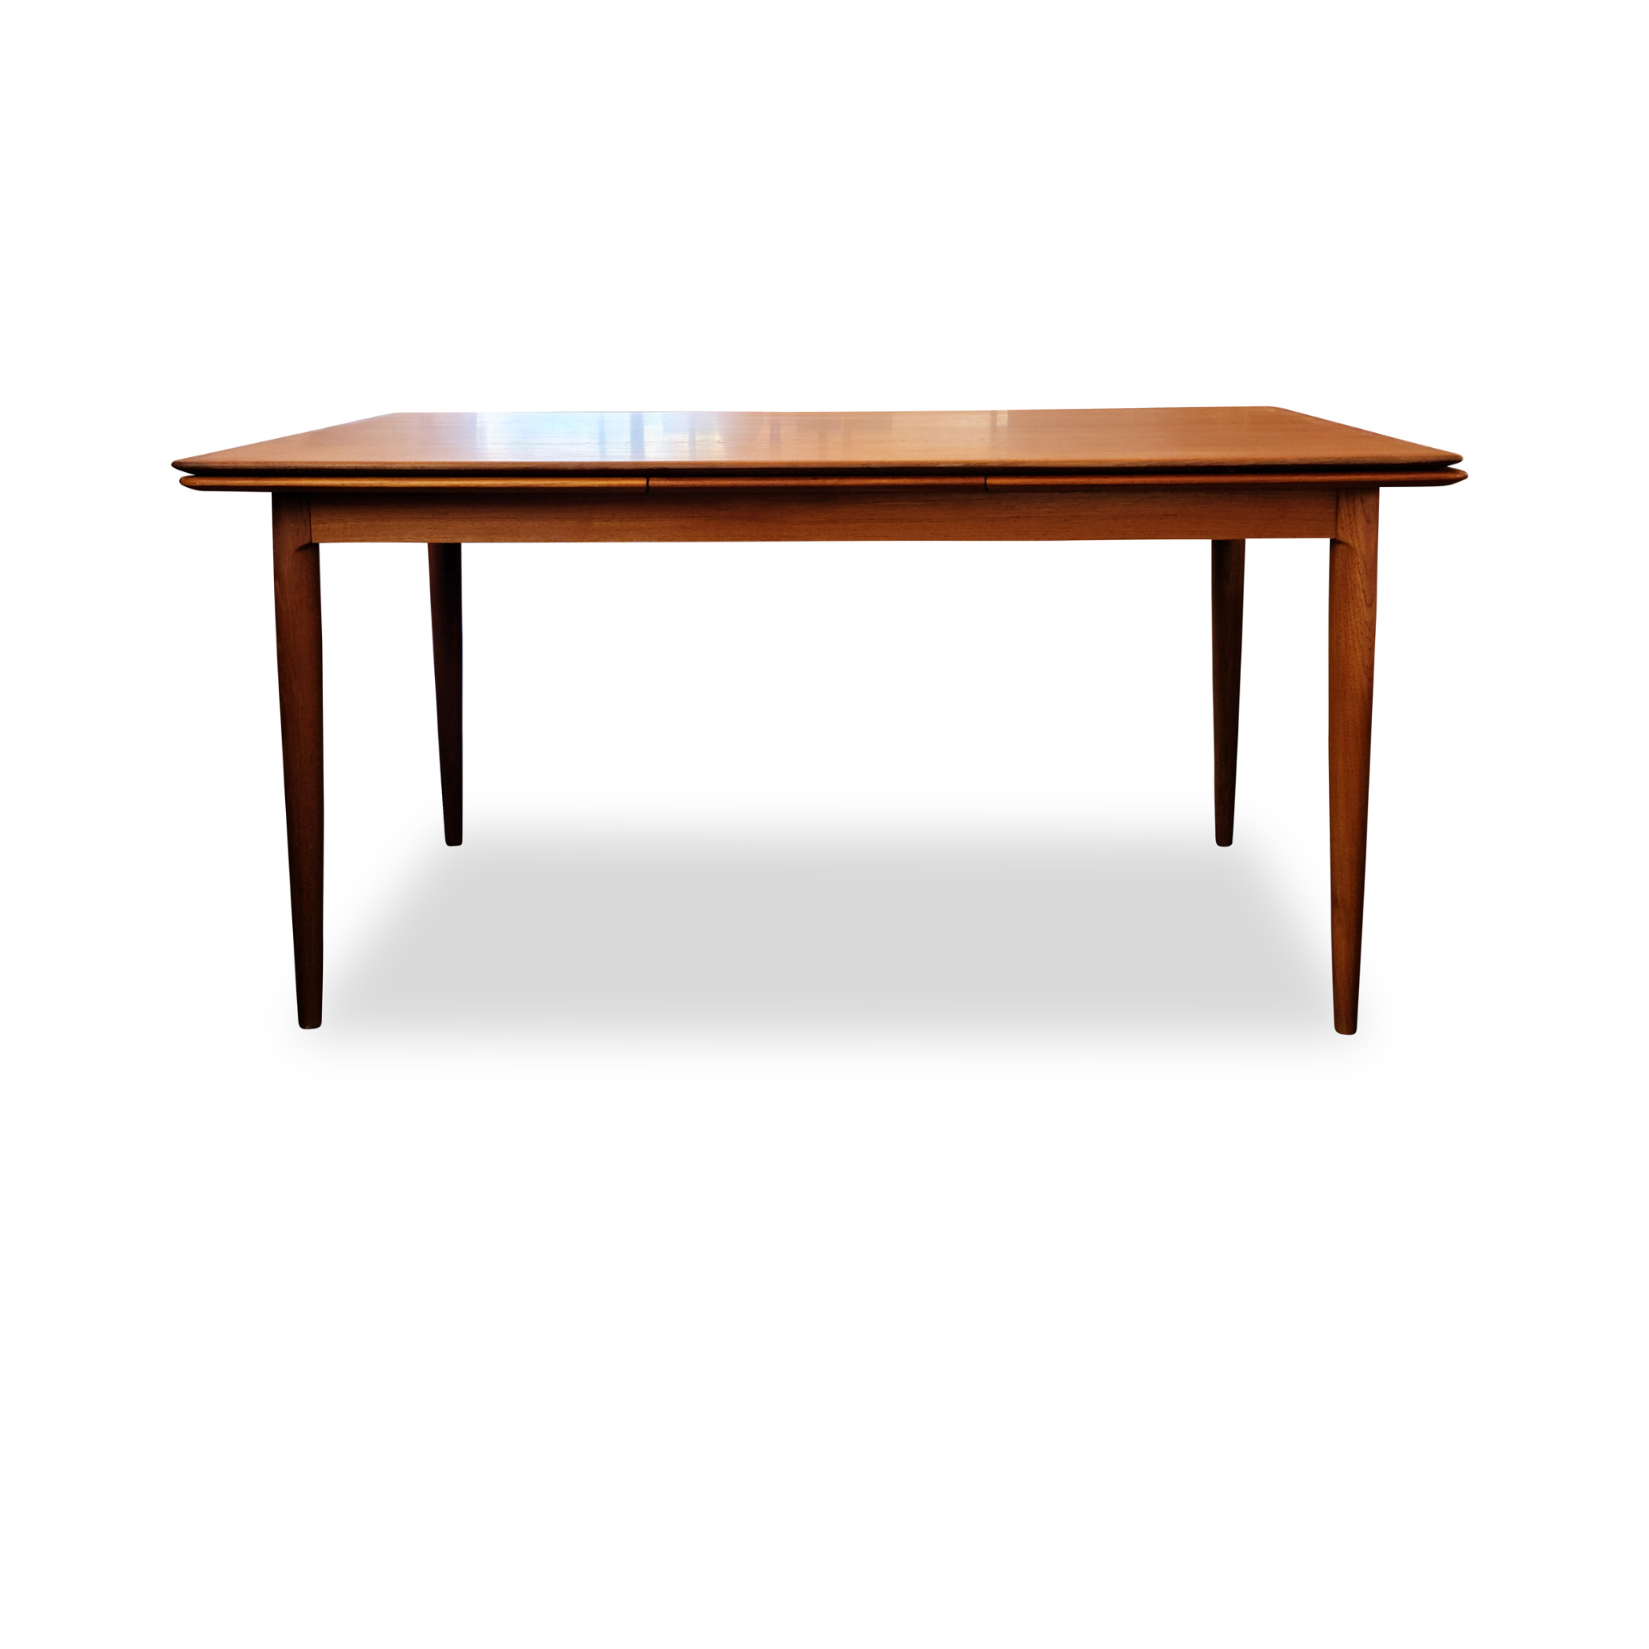 Teak Dining Table by Skovmand and Andersen